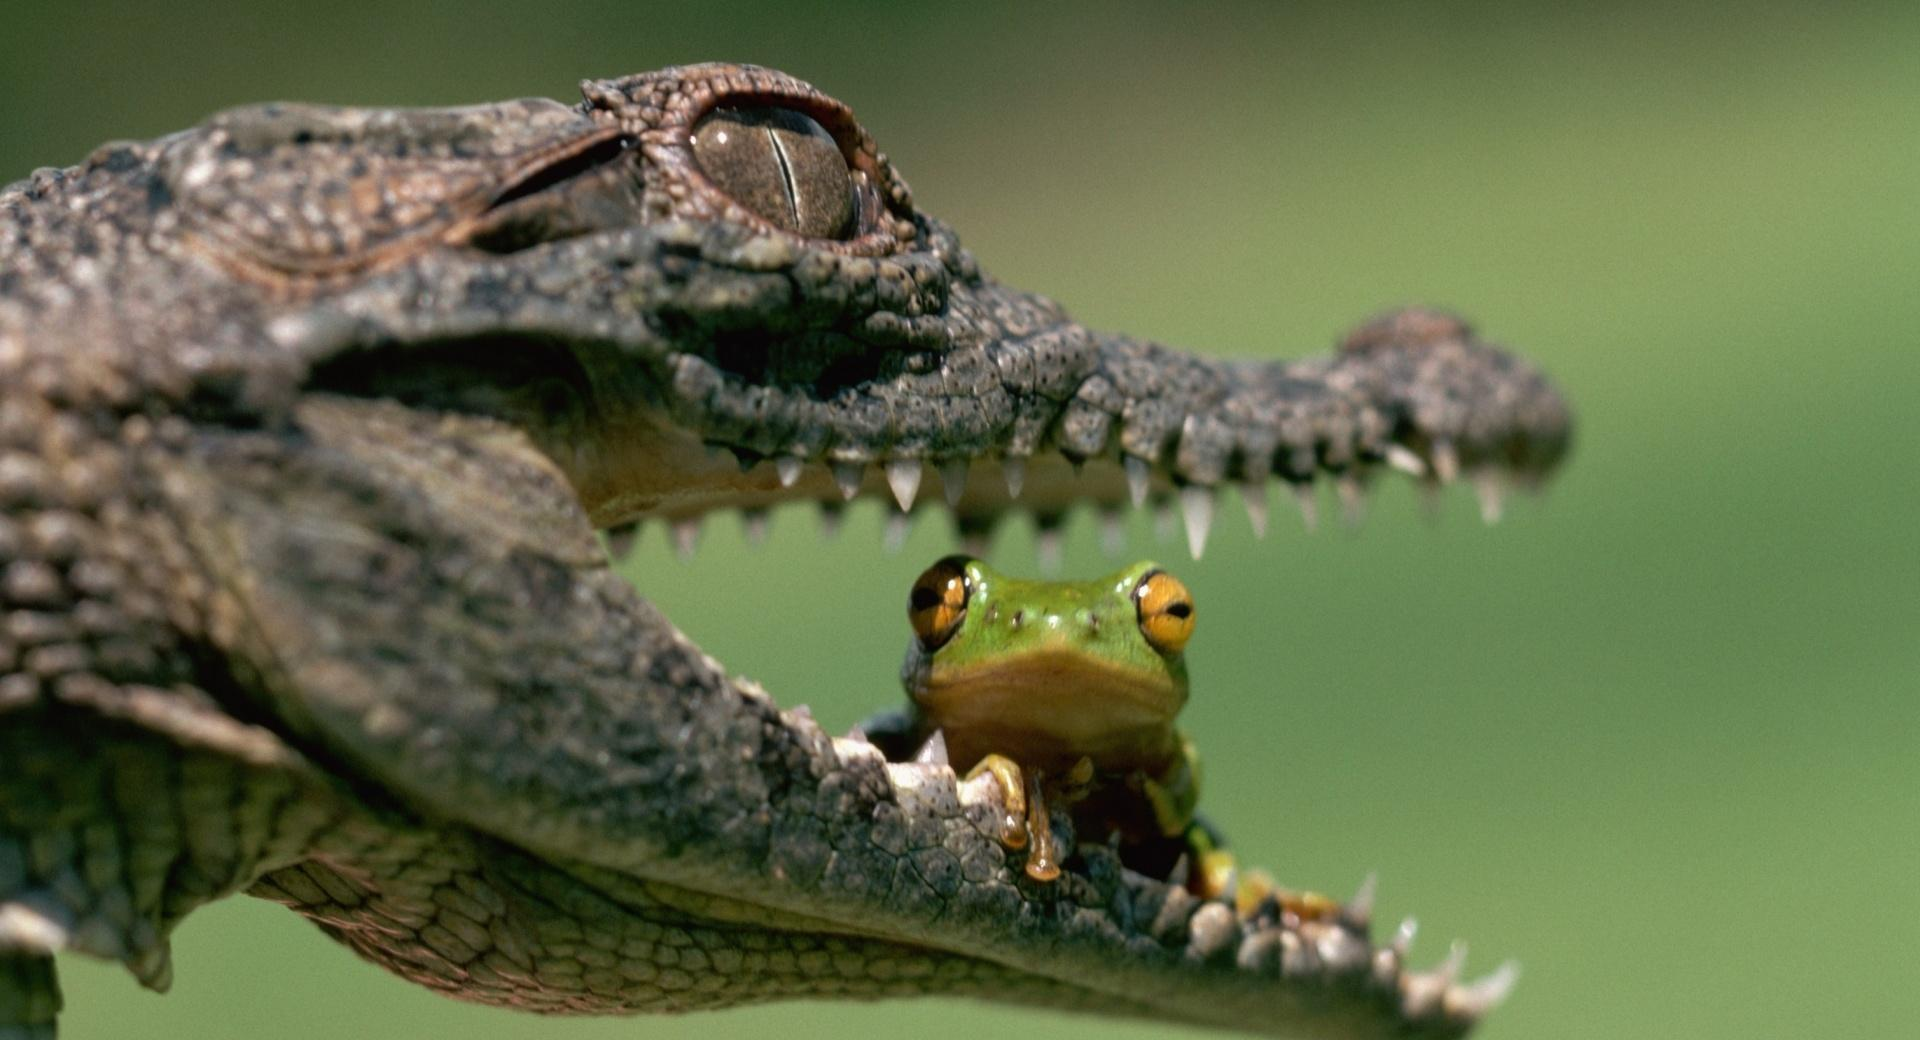 Crocodile Eating Frog at 320 x 480 iPhone size wallpapers HD quality